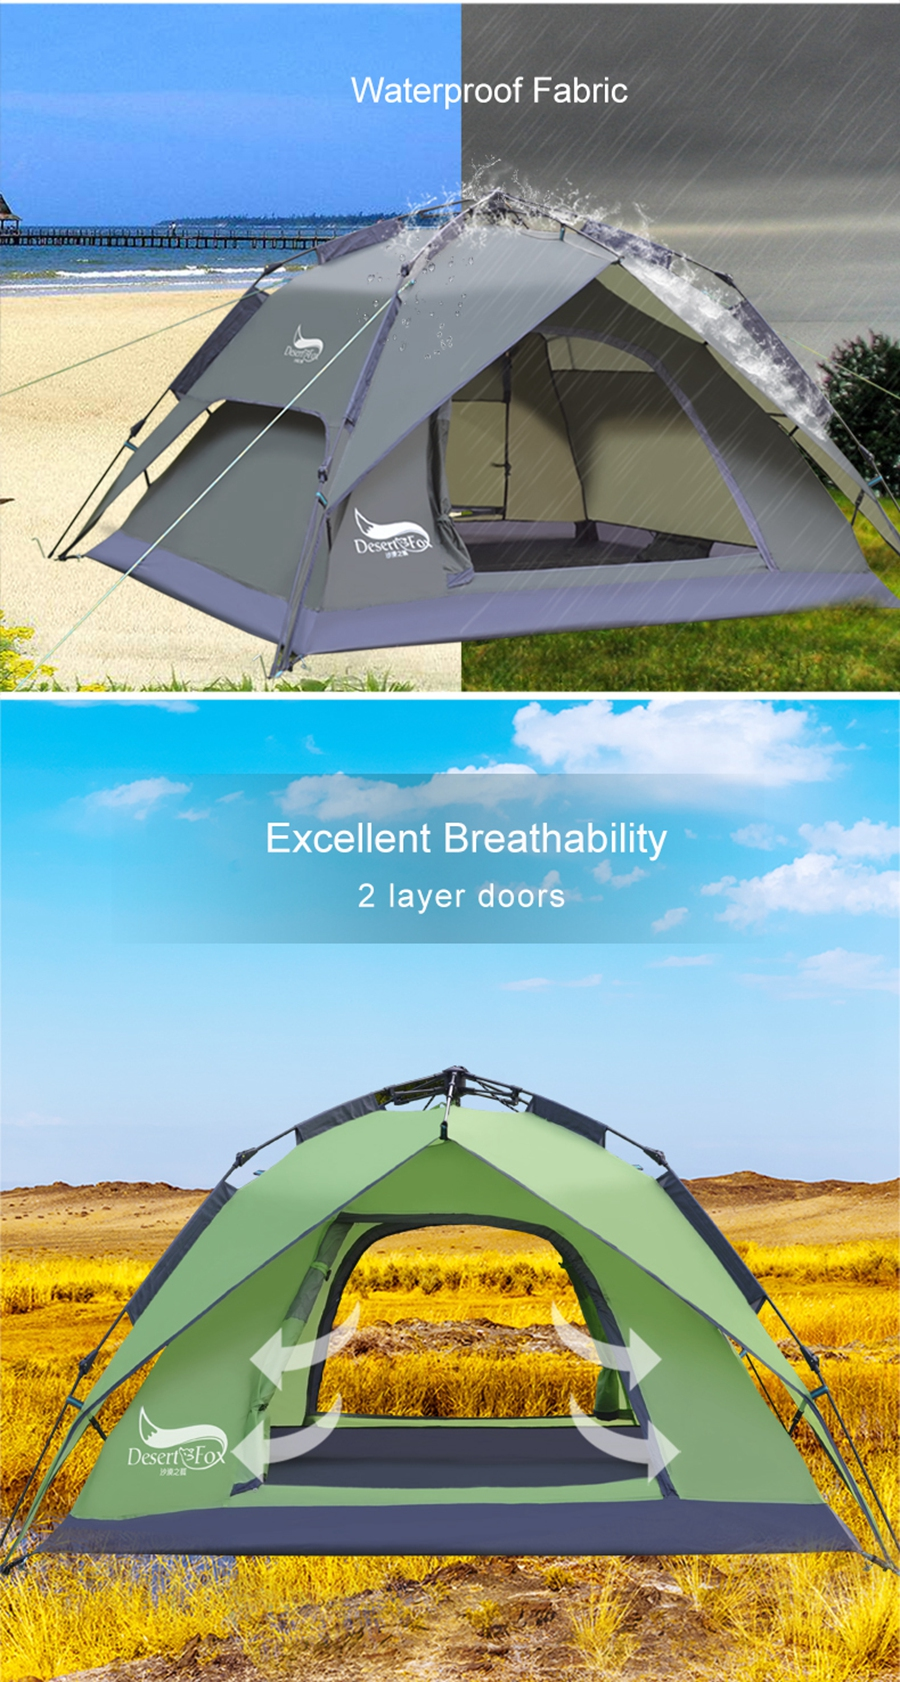 Desert&Fox Automatic Tent 3-4 Person Camping Tent,Easy Instant Setup Protable Backpacking for Sun Shelter,Travelling,Hiking